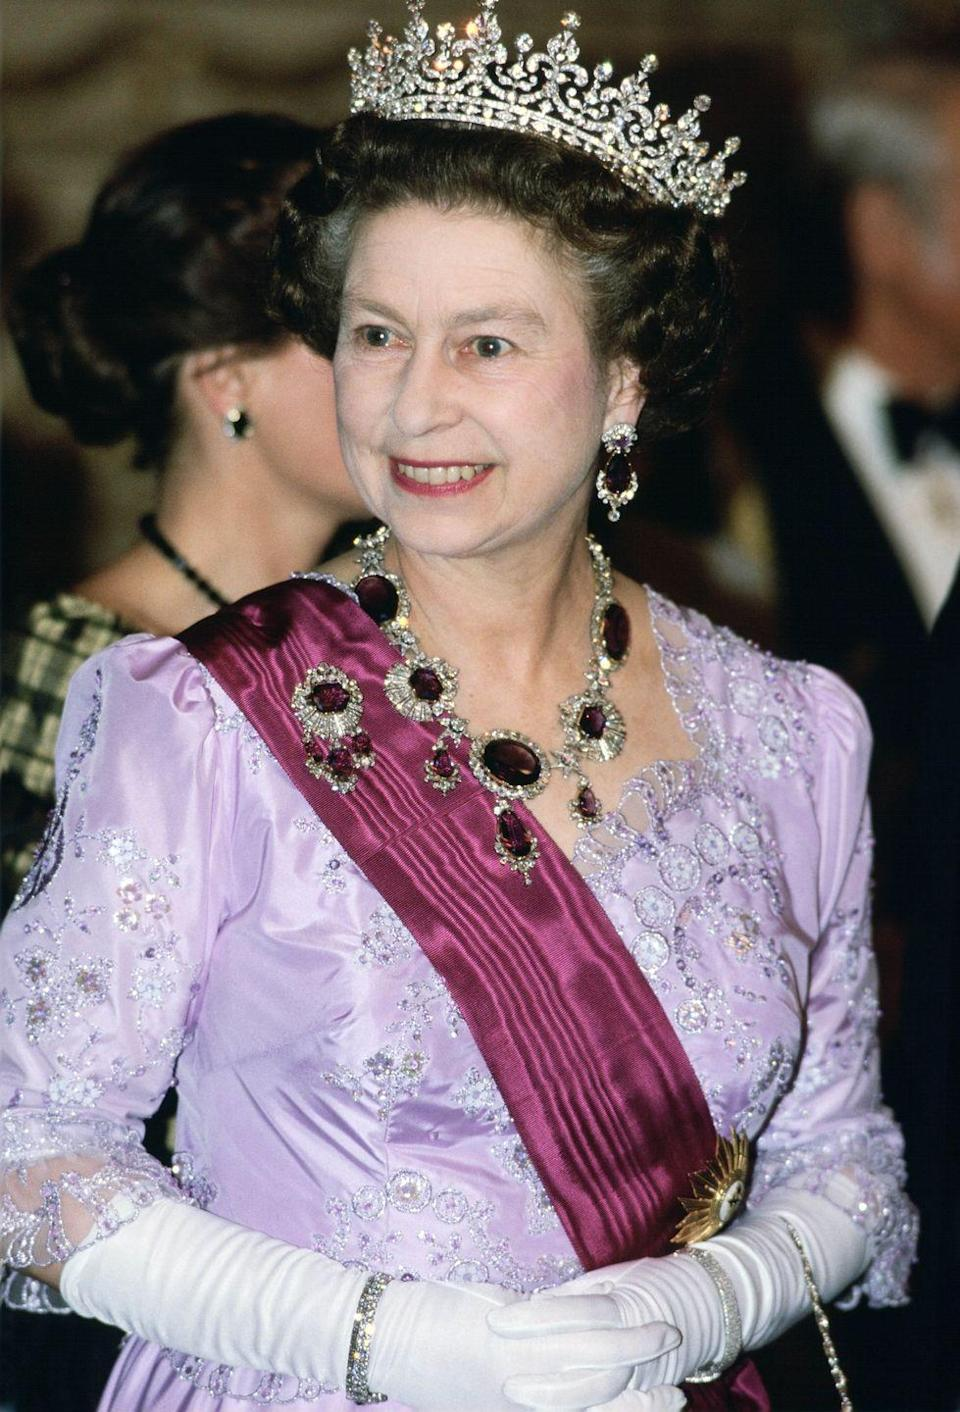 <p>The Queen's striking amethyst set, which includes a diamond brooch, necklace and earrings, is known as the Crown Amethyst Suite of Jewels and it originally belonged to Queen Victoria's mother. Elizabeth is seen wearing it here on March 26, 1985.</p>